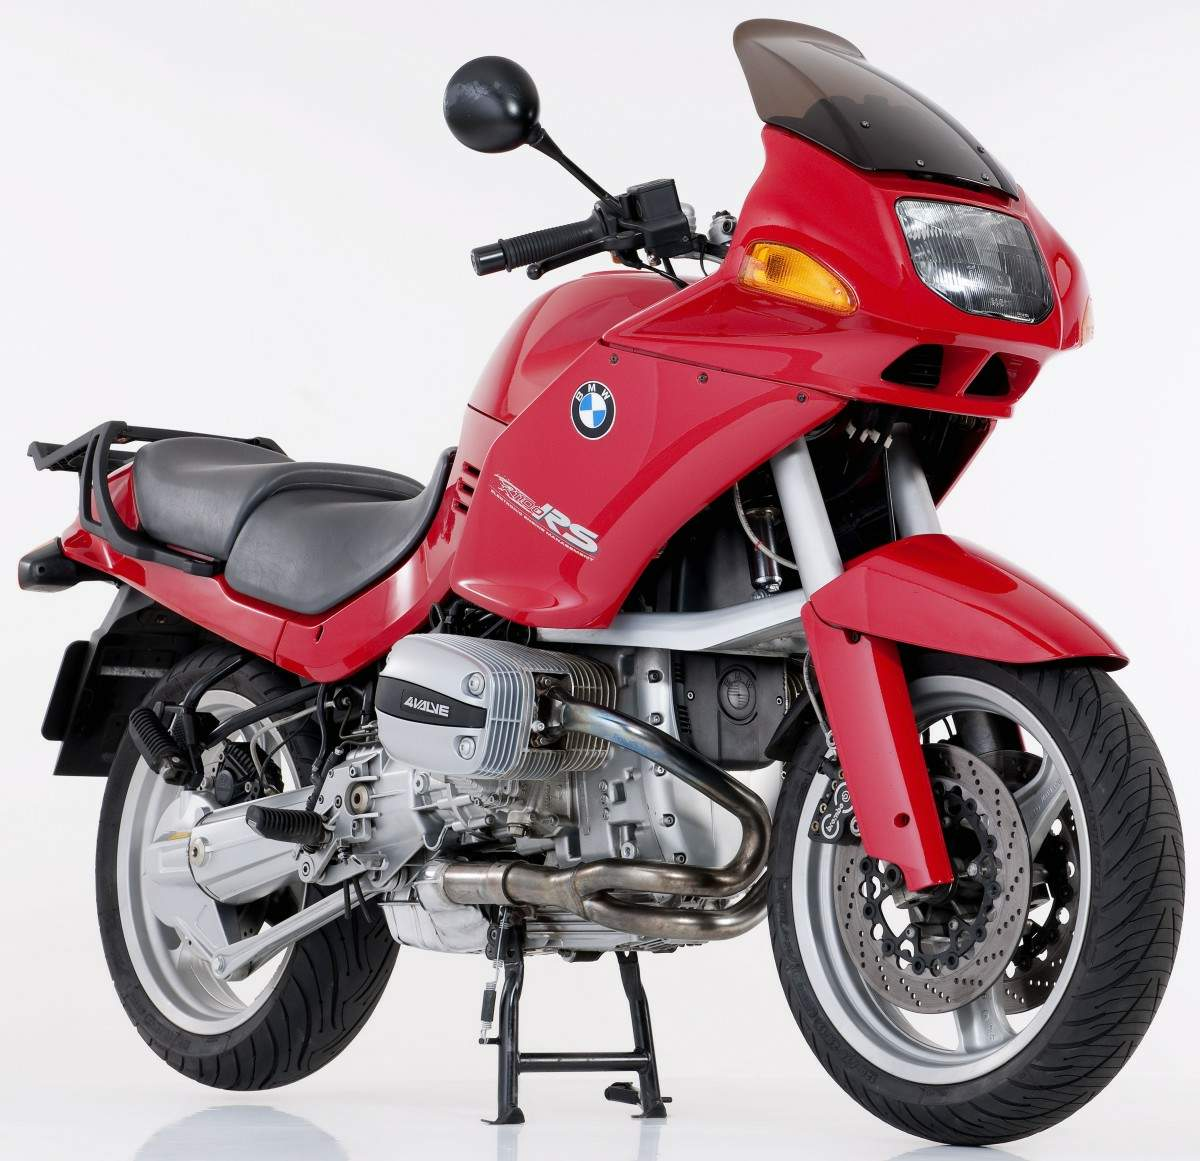 BMW R1100RS 1993 images #5962